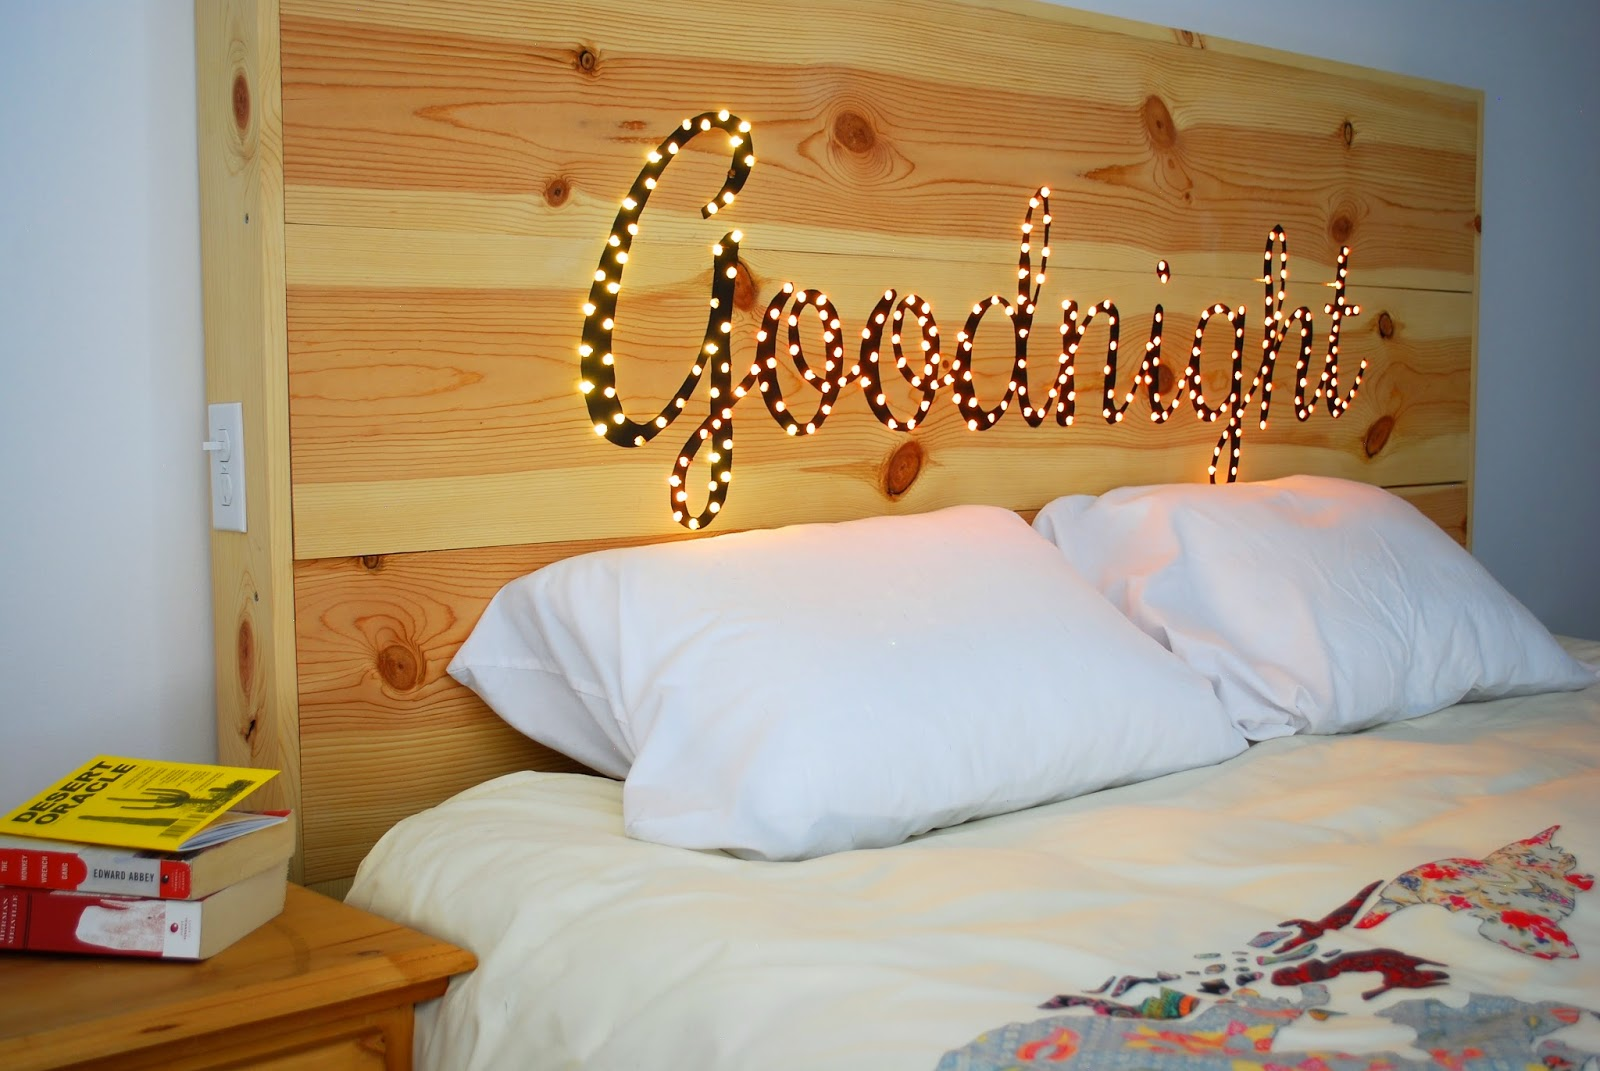 25 Cheap And Chic Diy Headboard Ideas: headboard with pictures